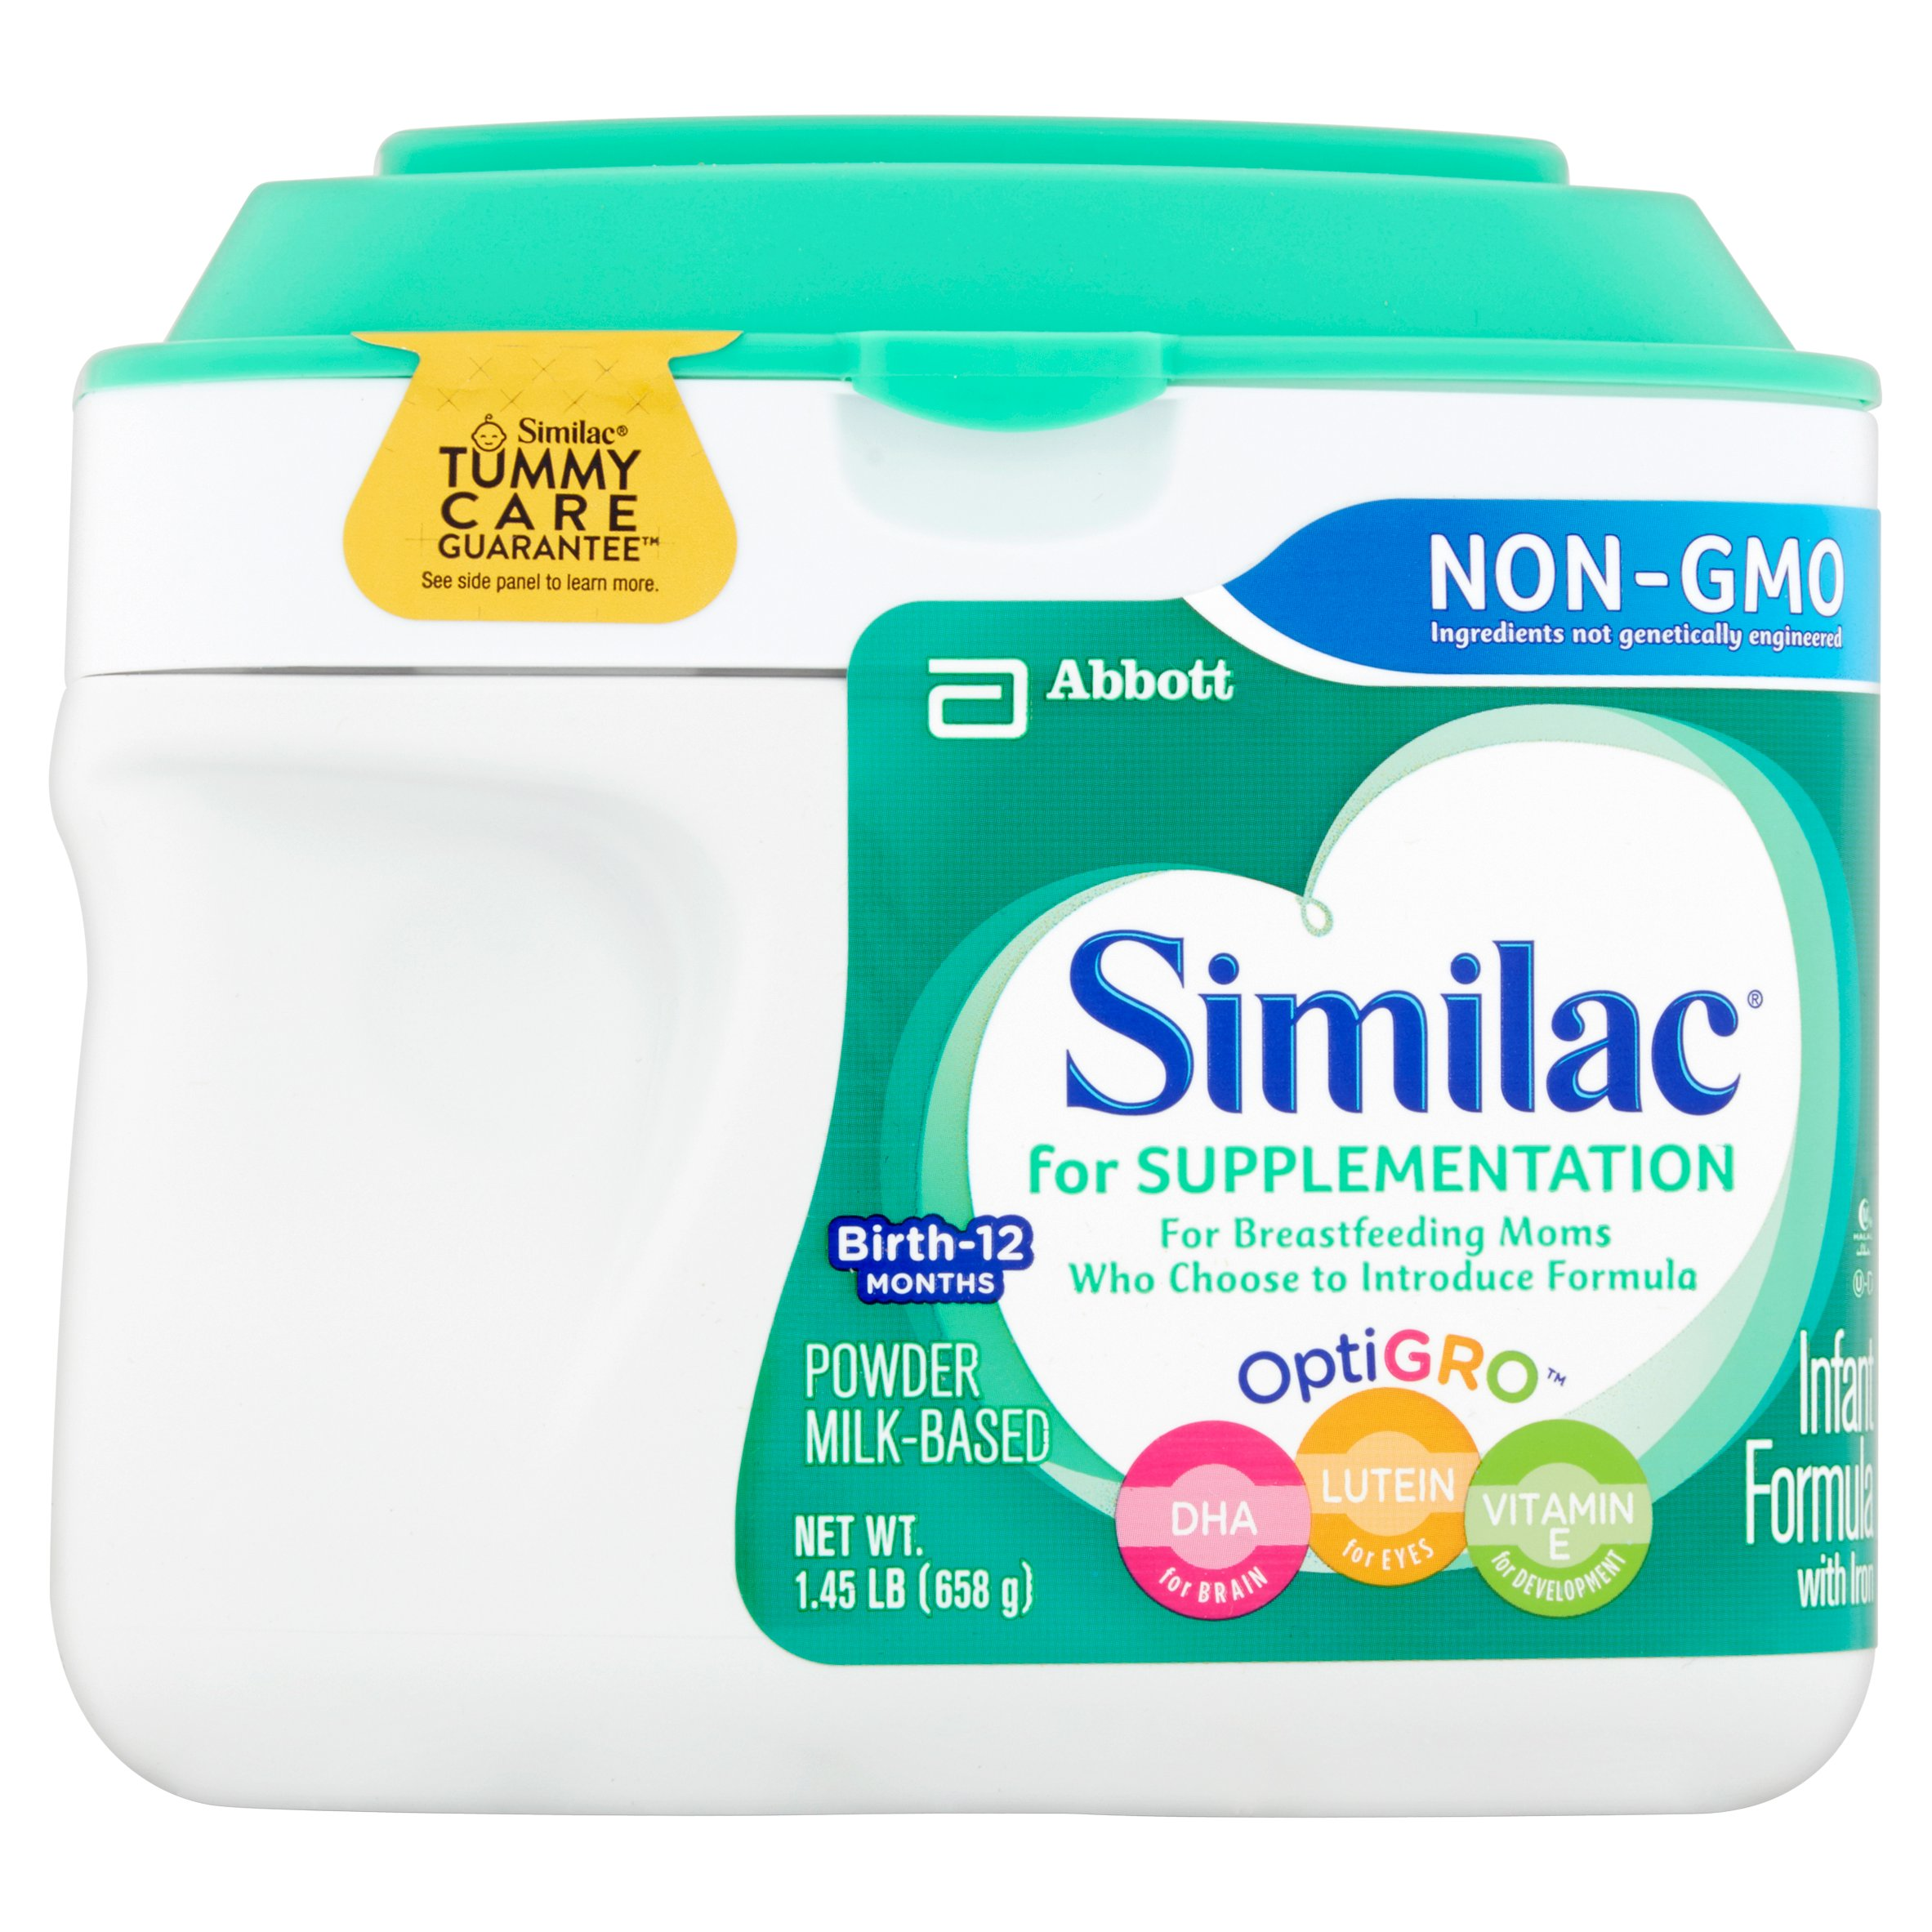 Similac for Supplementation, Powder, NON-GMO, 23.2 oz